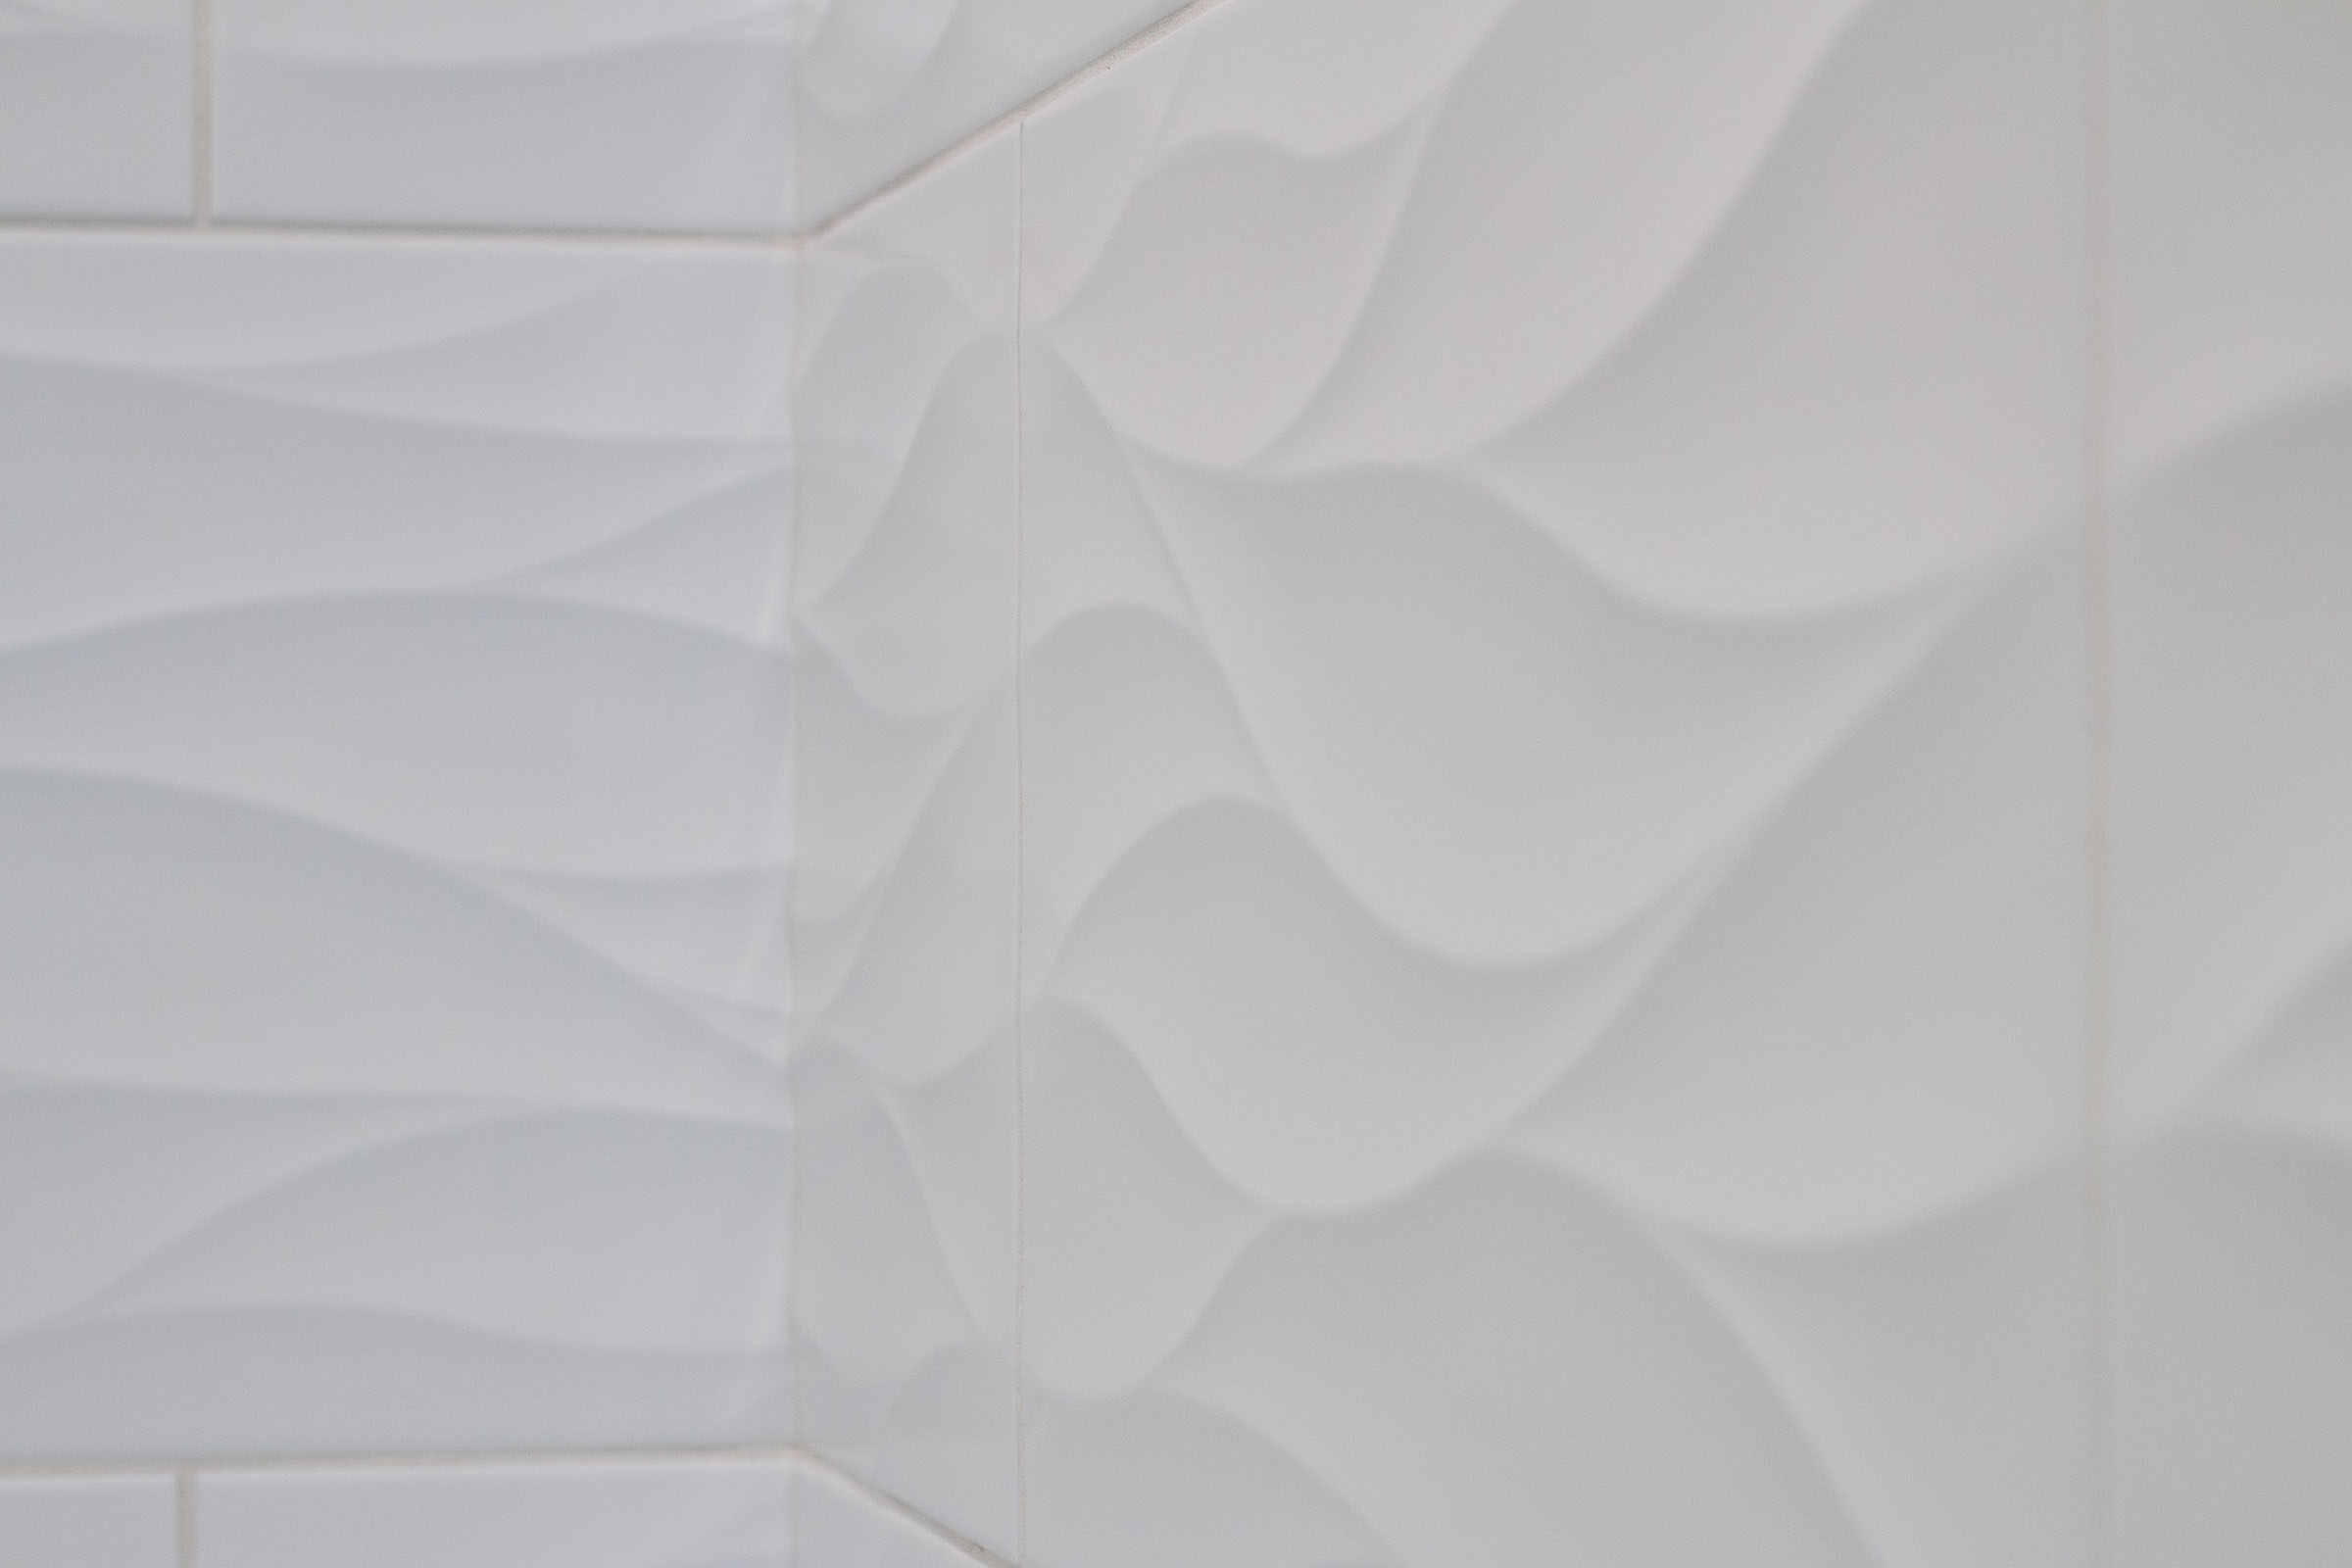 Close up of white shower tile with wavy texture